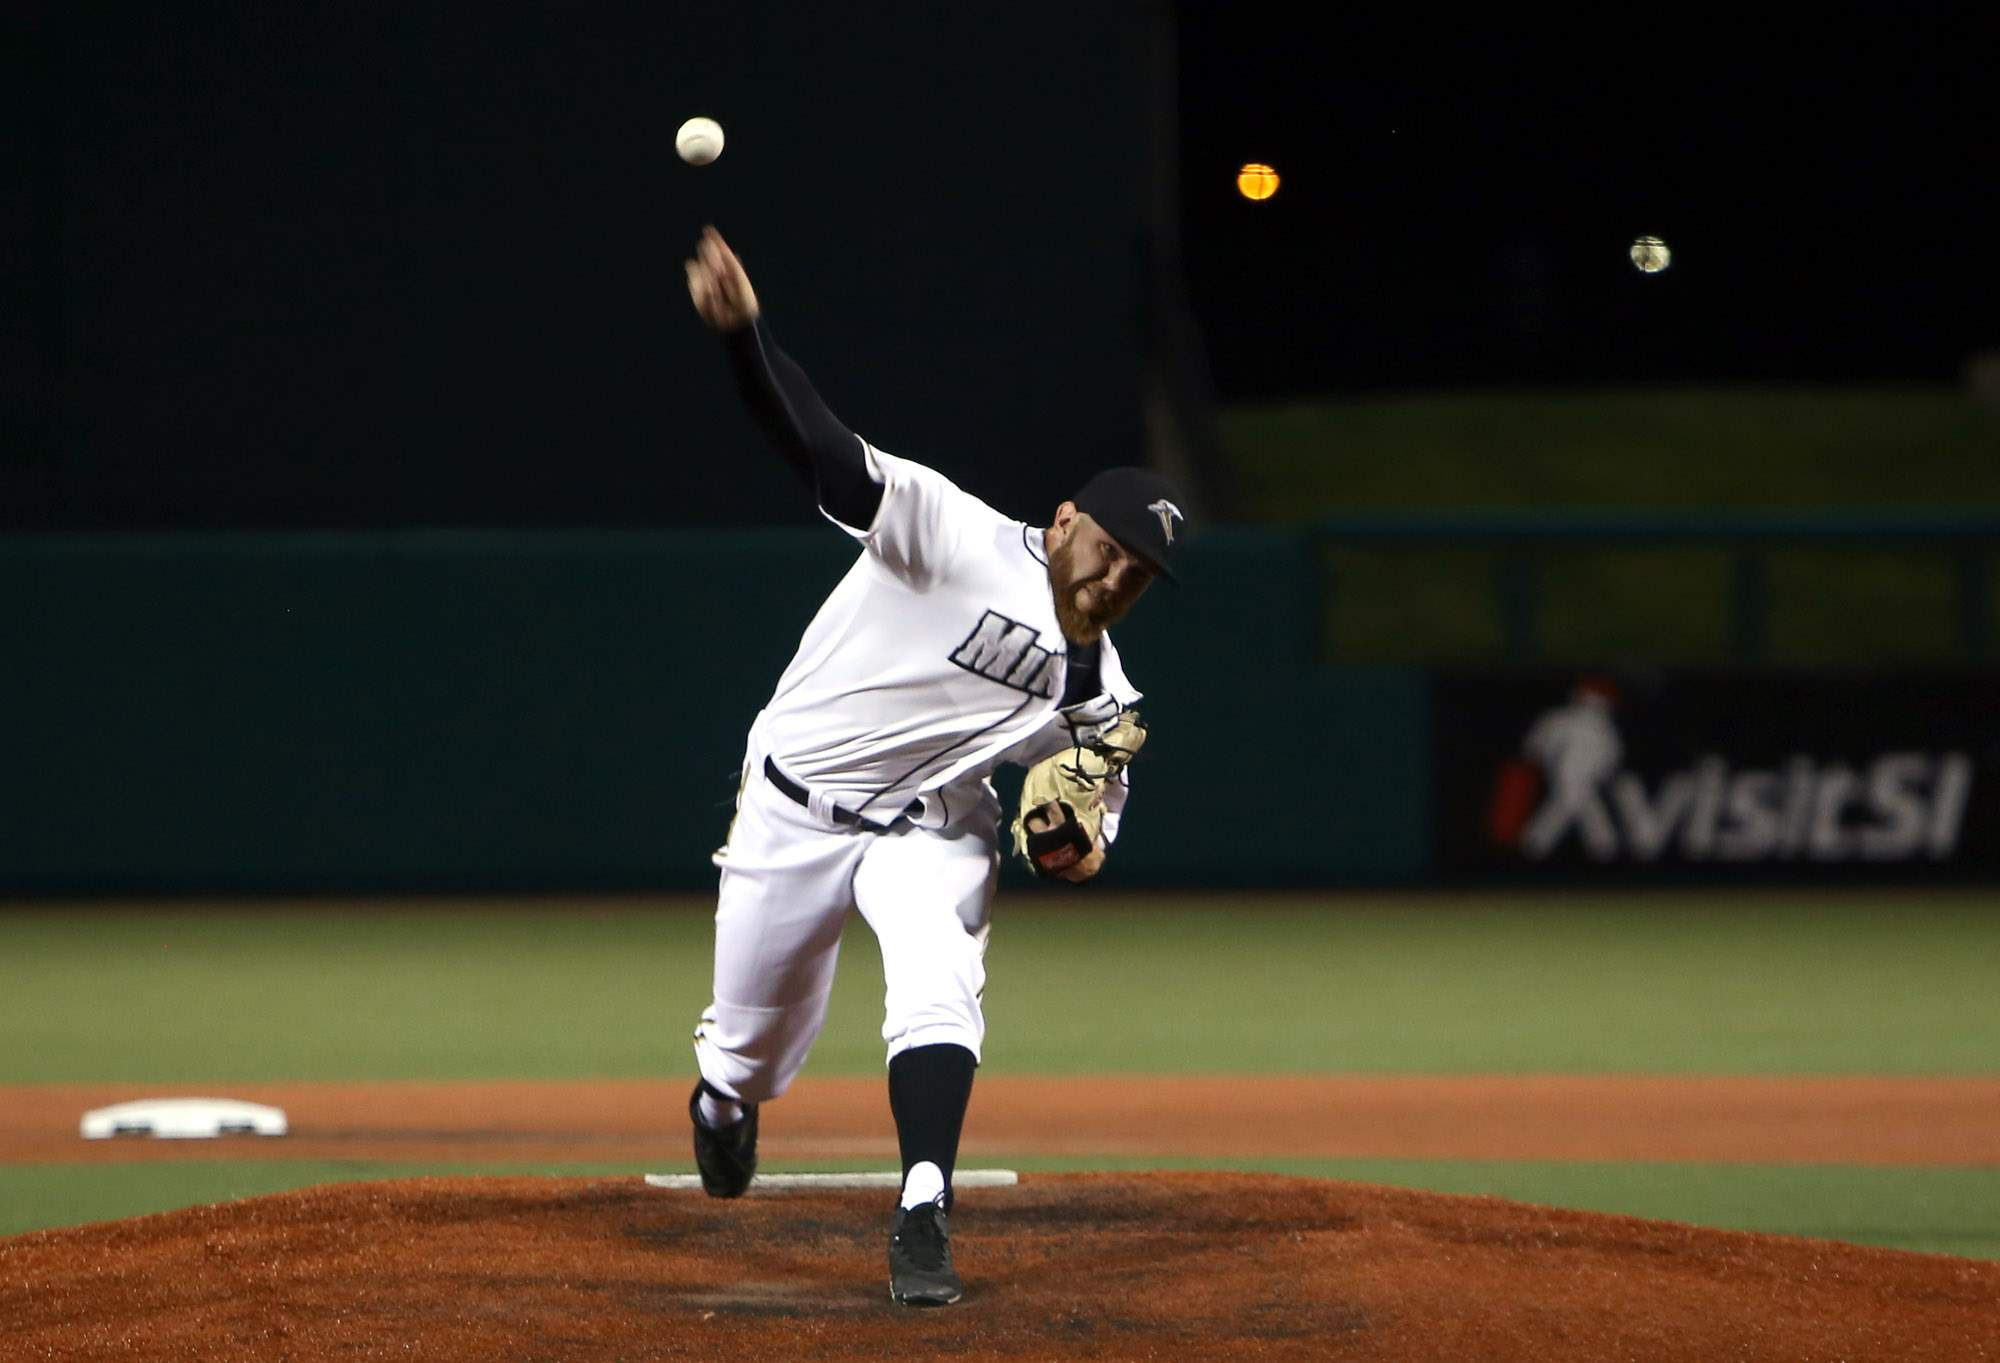 Robby Rowland throws a pitch on opening night.